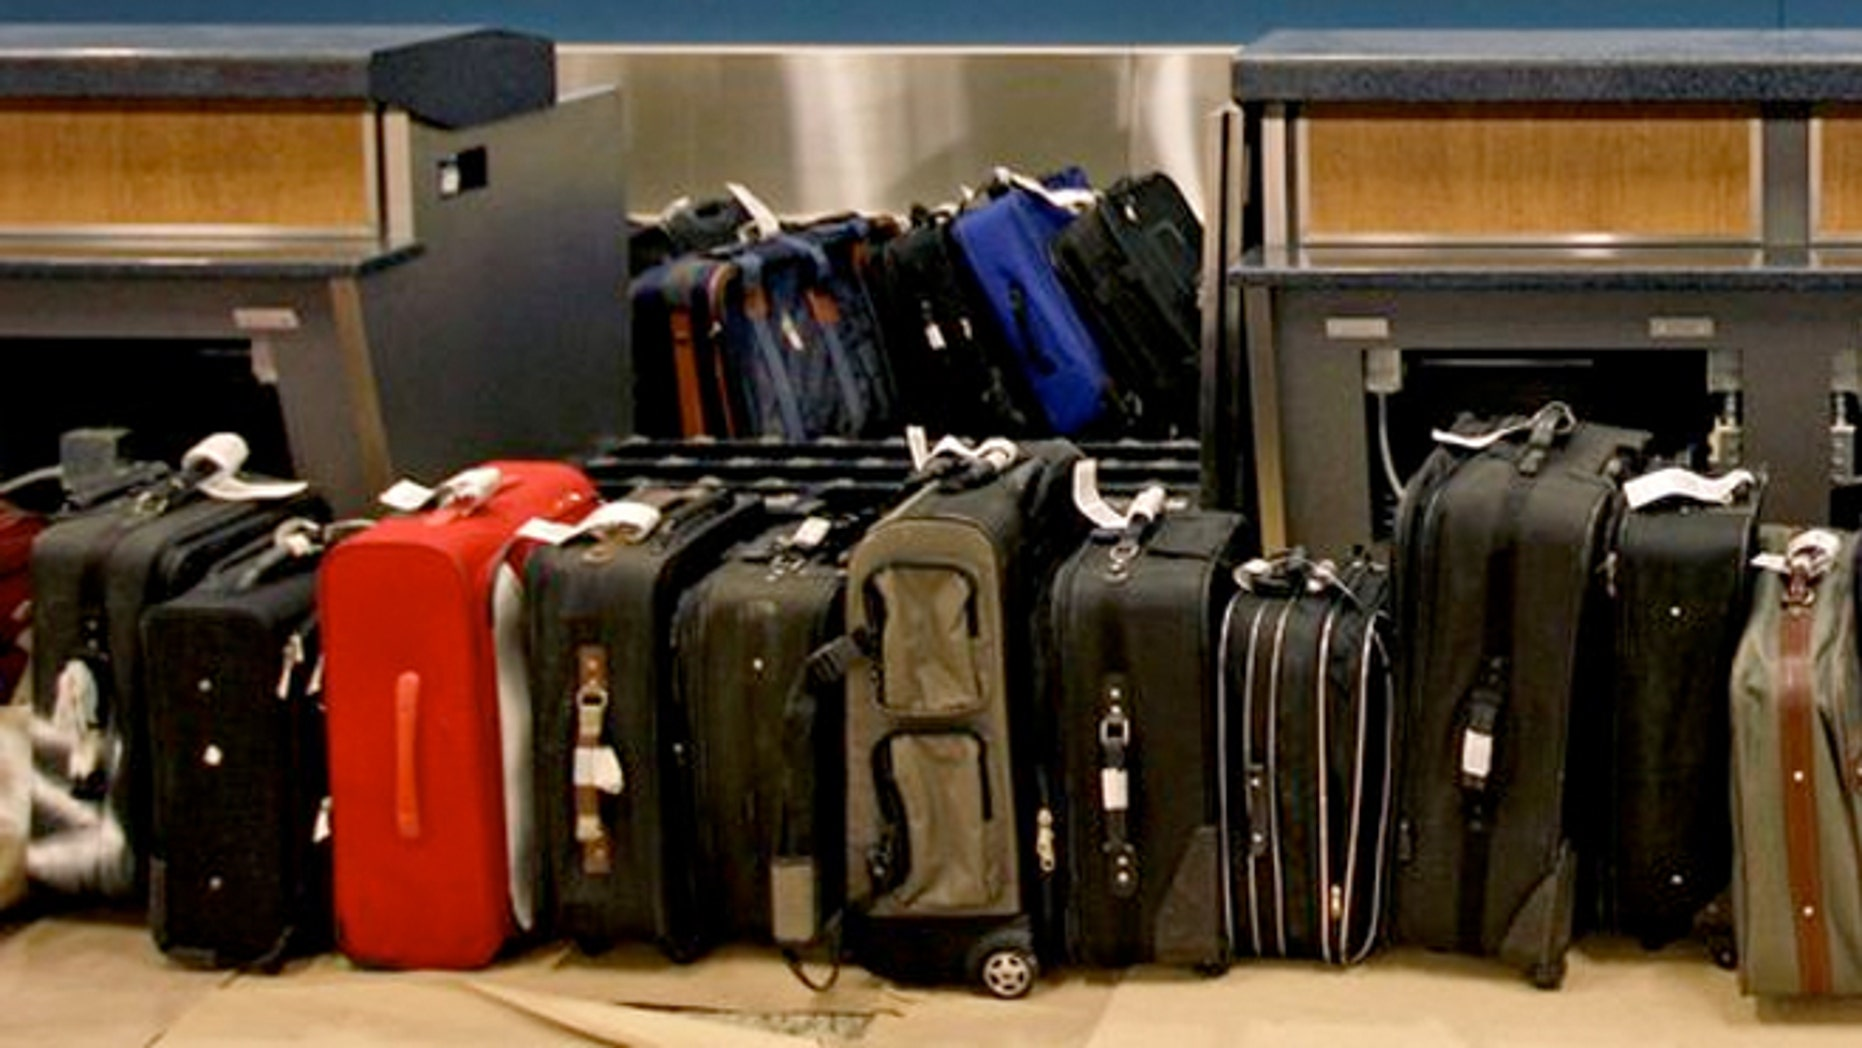 Airlines collected $3.5 billion in baggage fees in 2014.